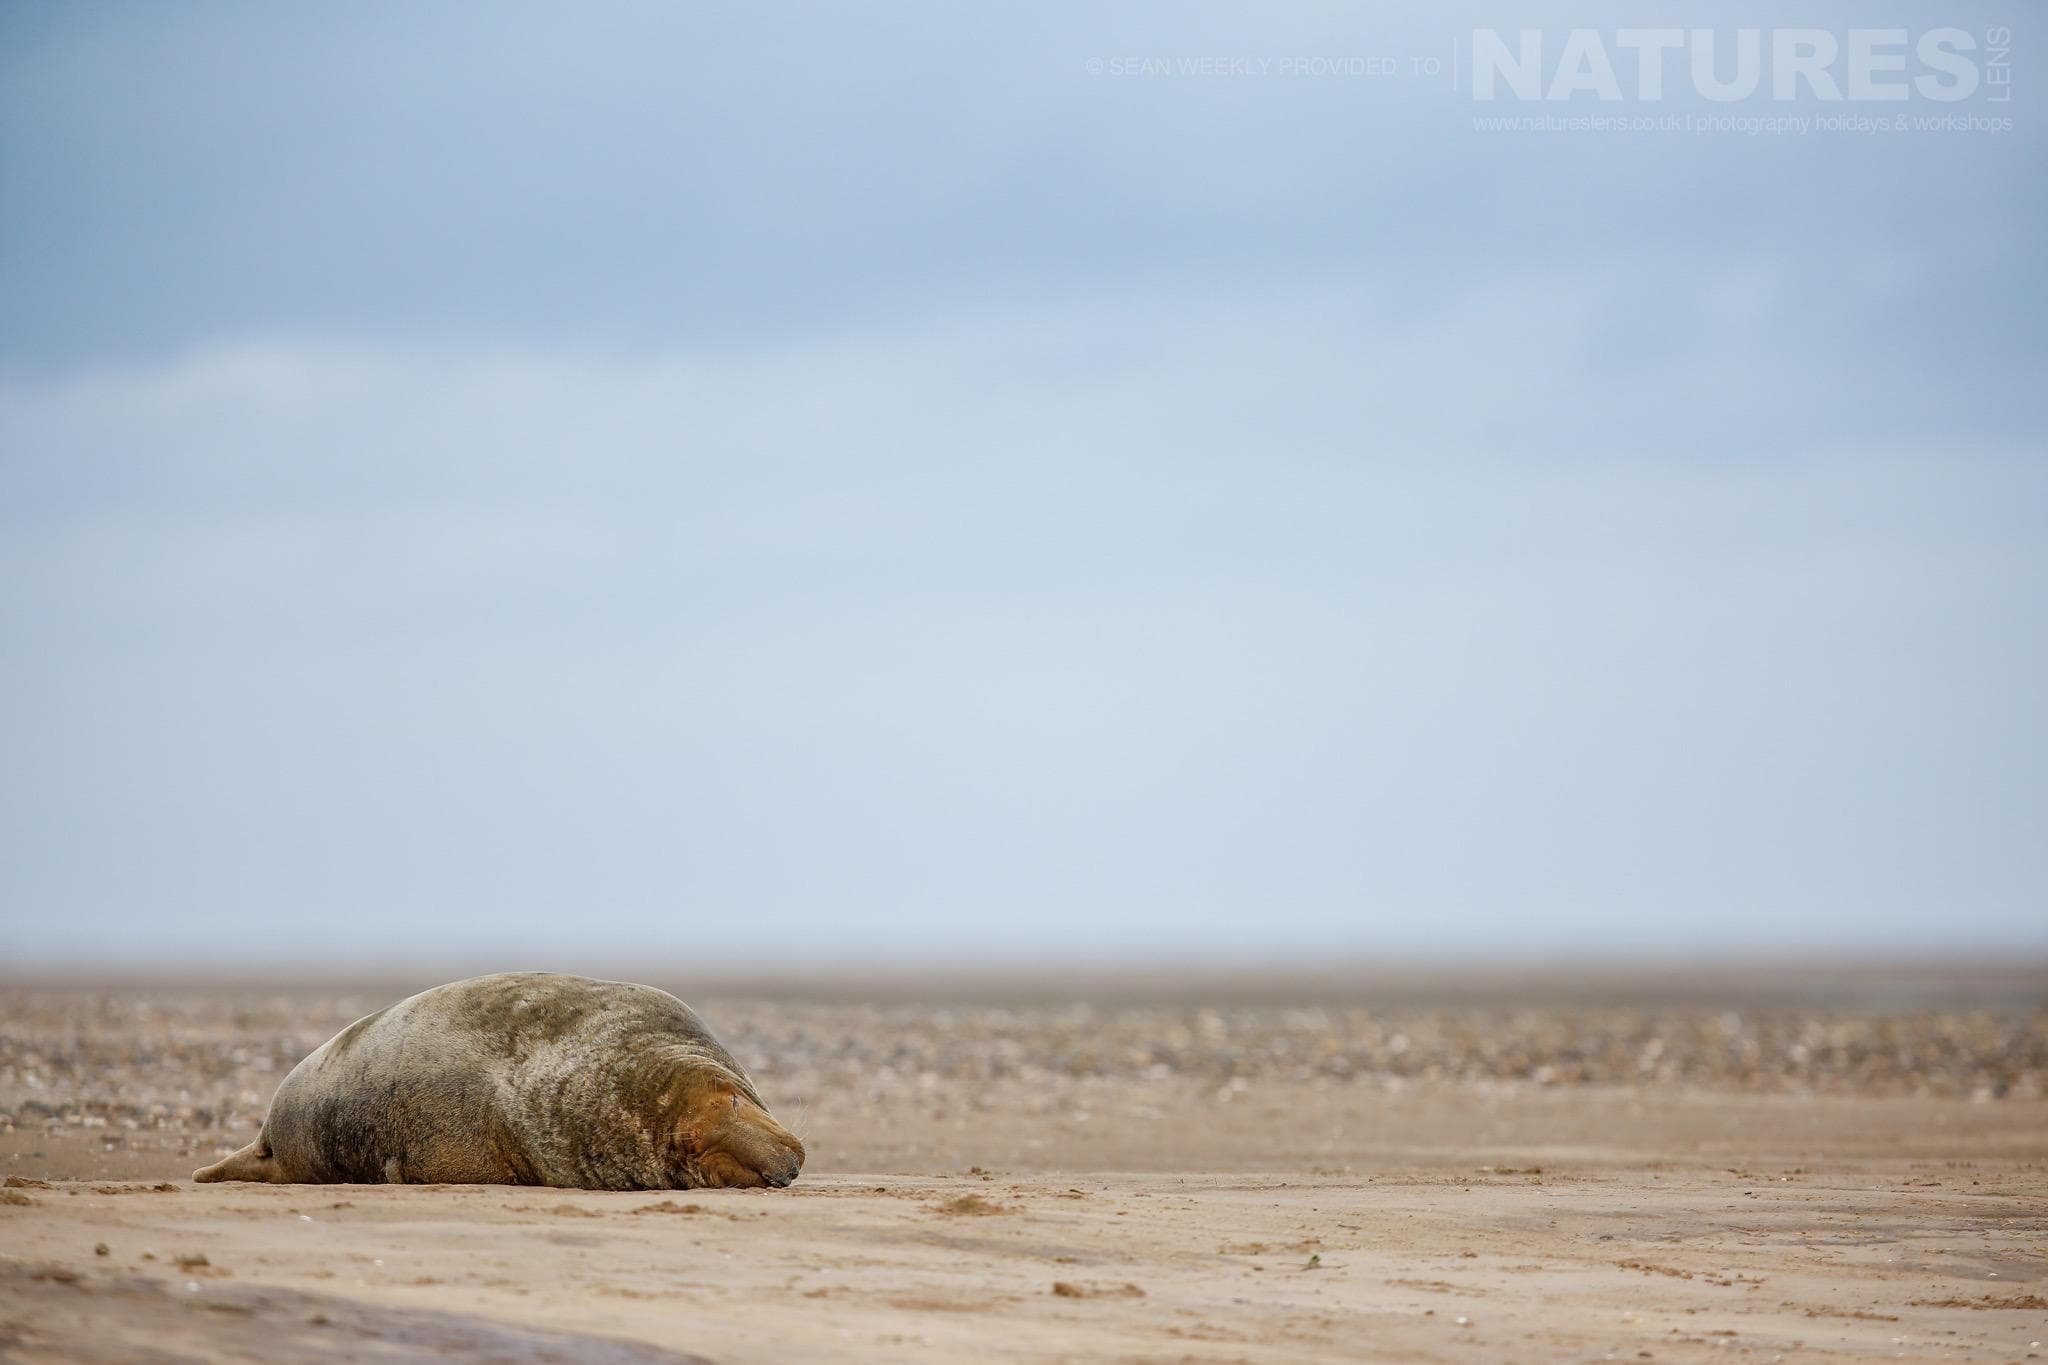 An older seal found on a secluded beach - typical of the type of image that participants of the NaturesLens Atlantic Grey Seals Photography Holiday will be able to capture